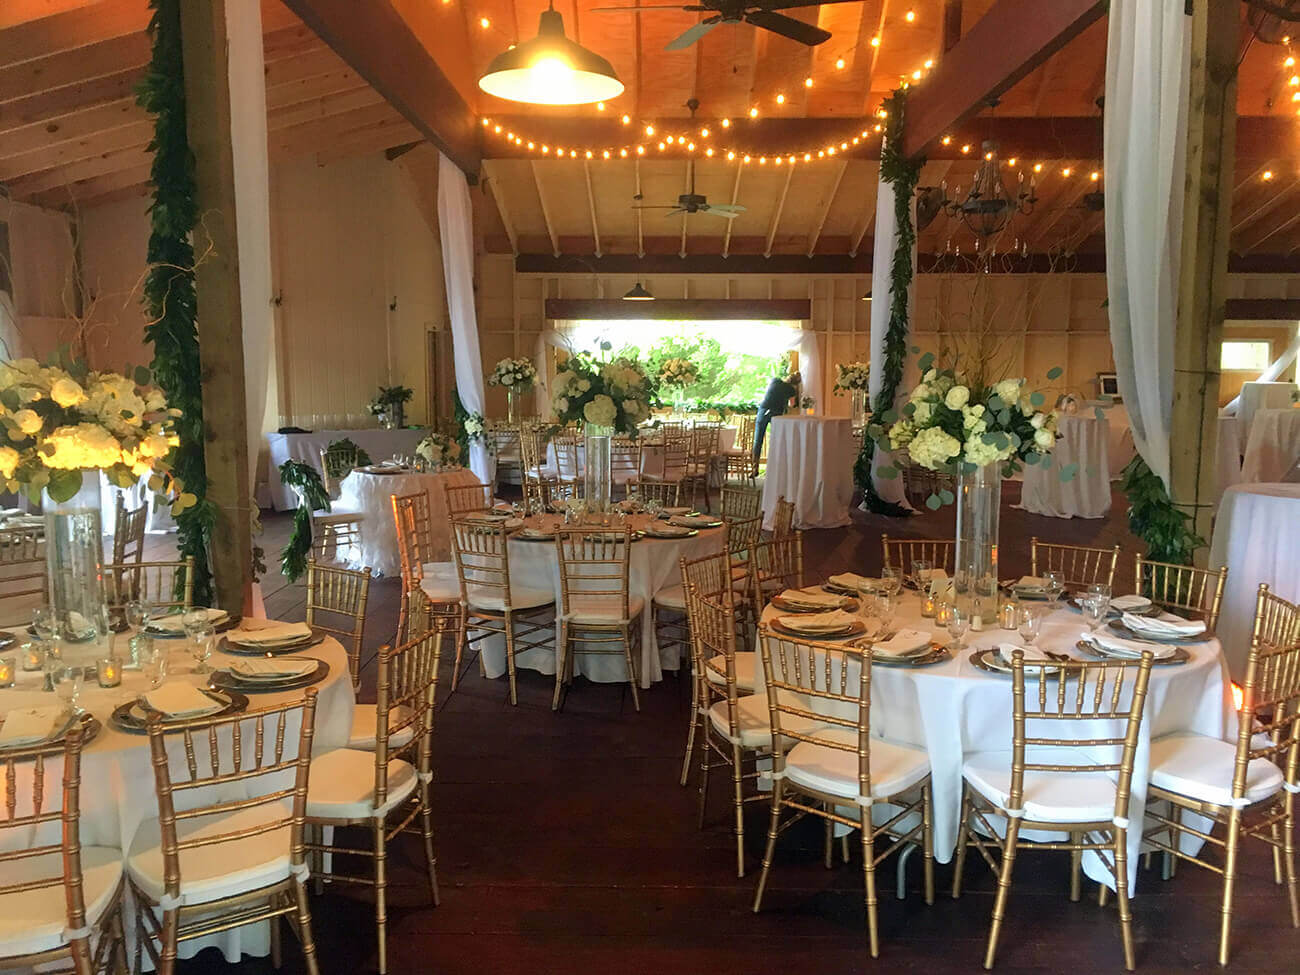 eden try winery wedding venues for sale